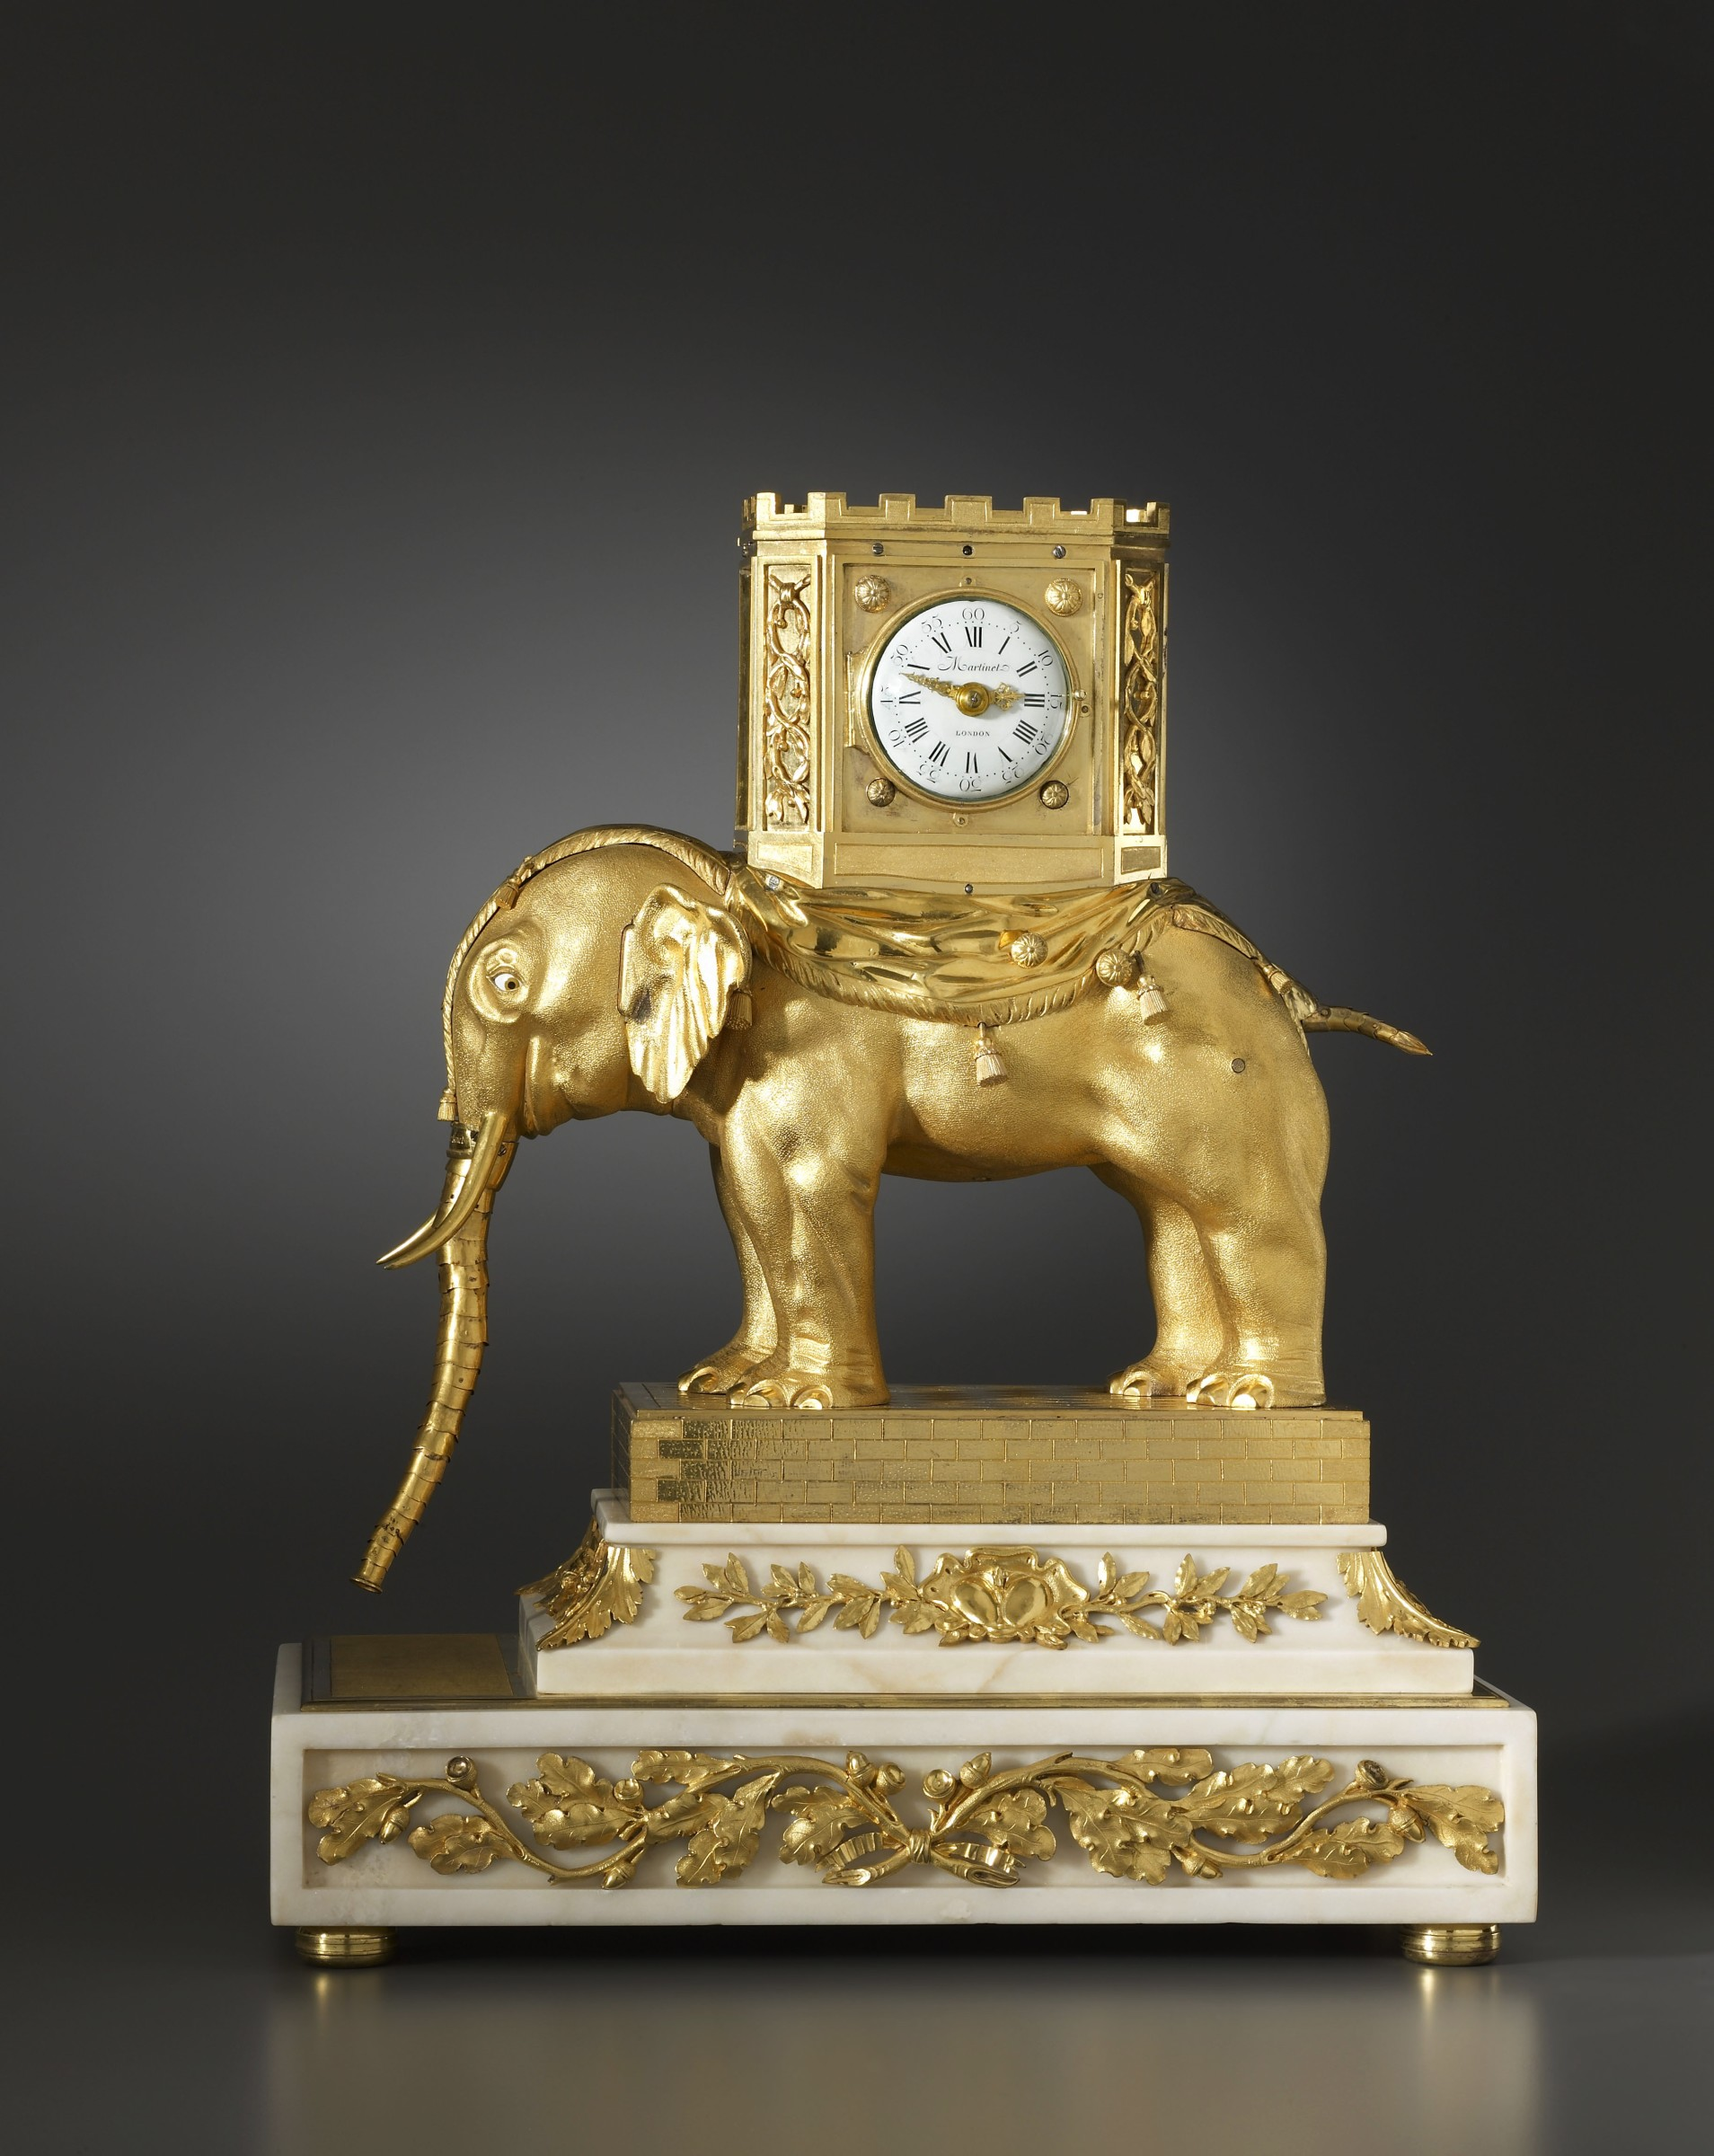 Hubert Martinet A Very Important George Iii Automaton